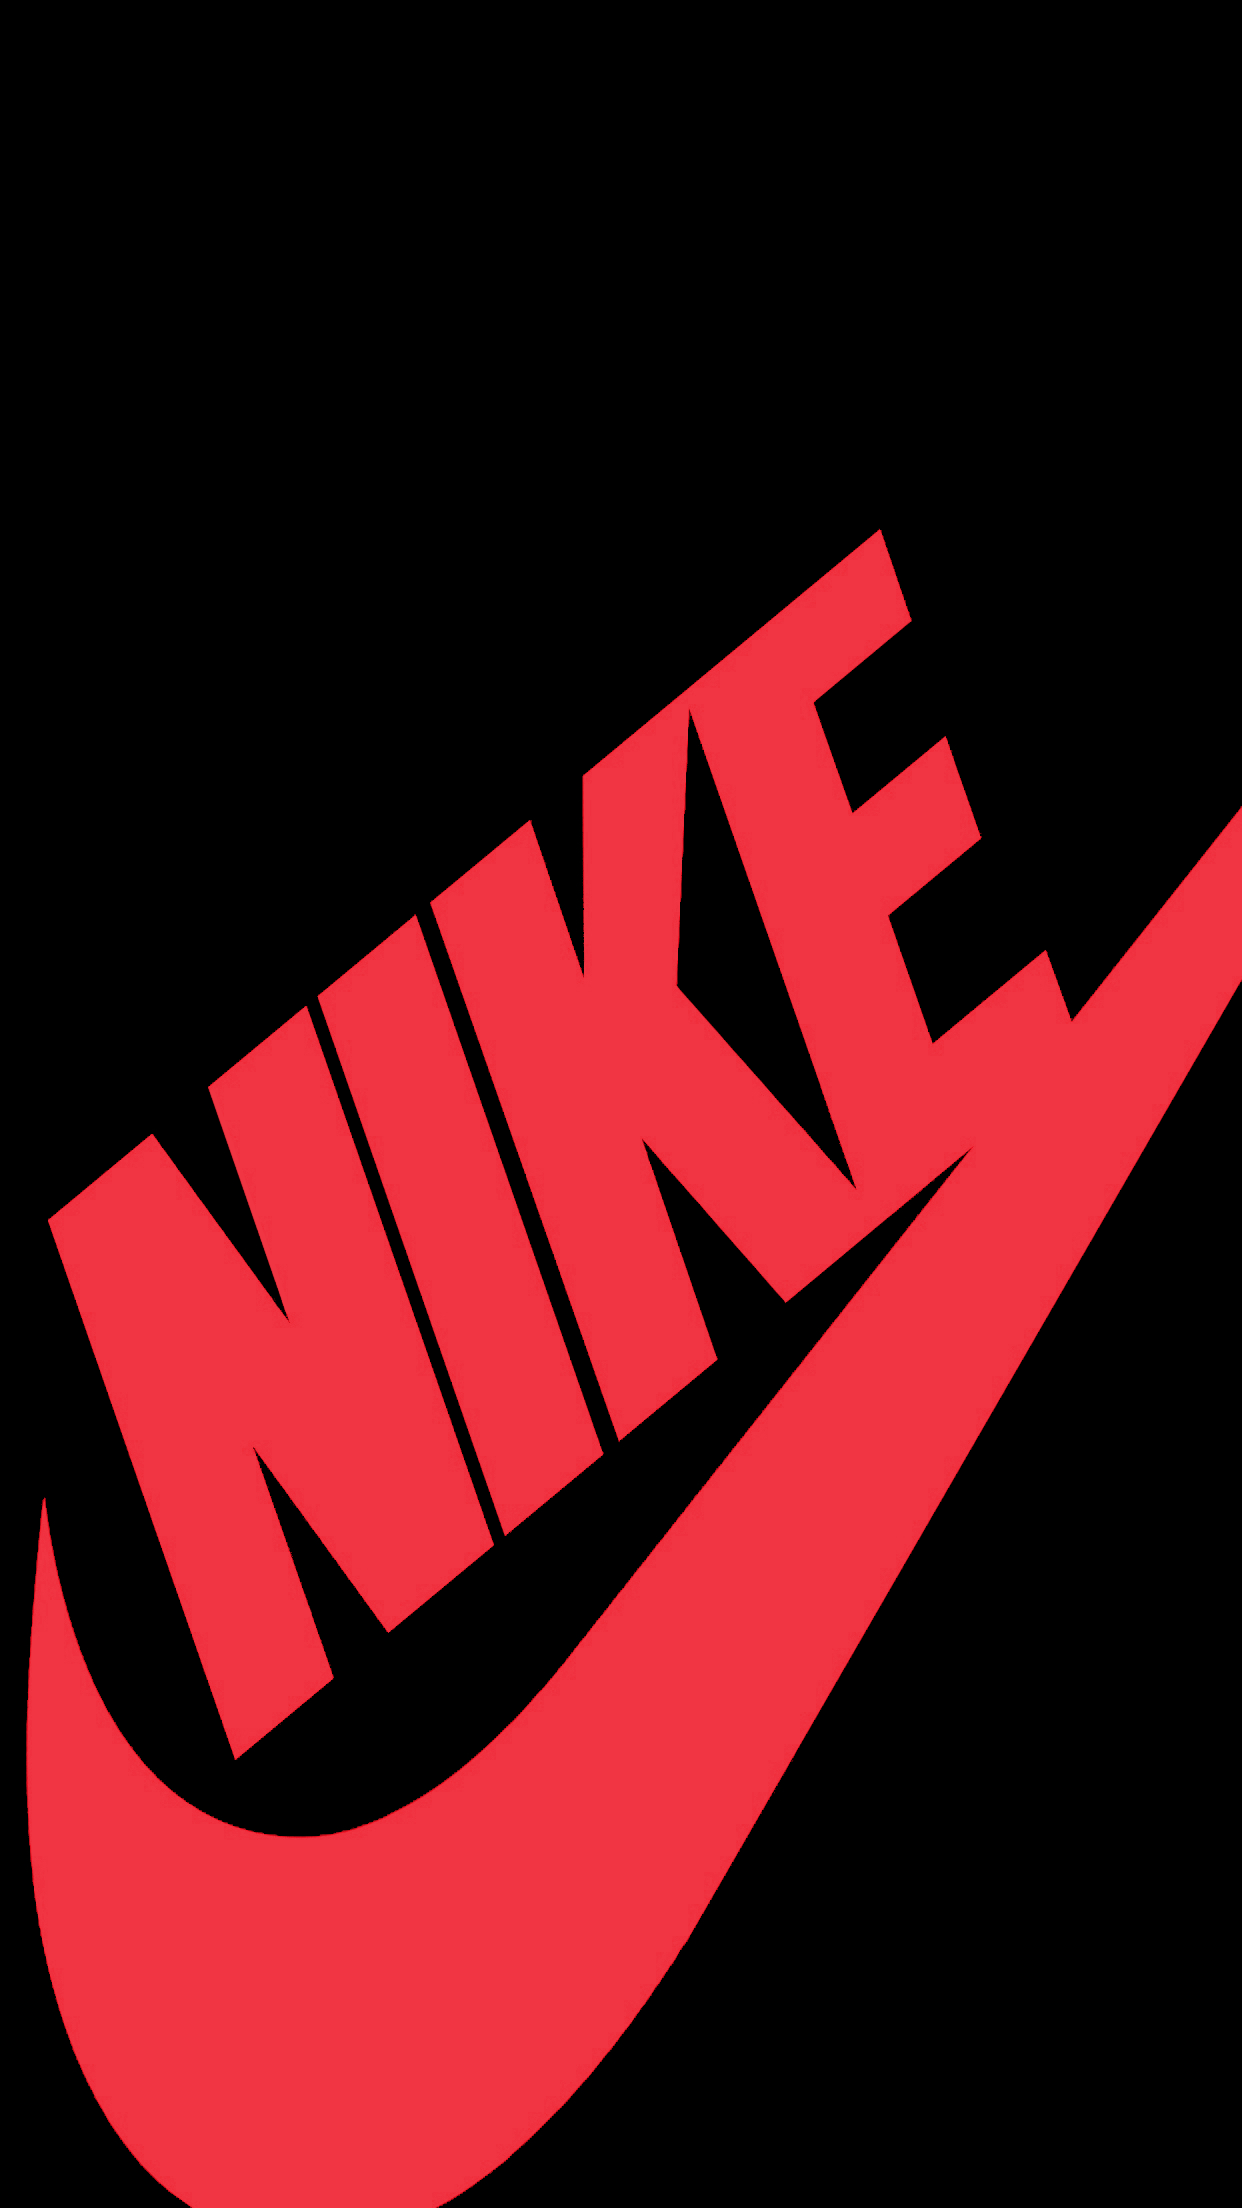 wallpapers nike 2016 wallpaper cave